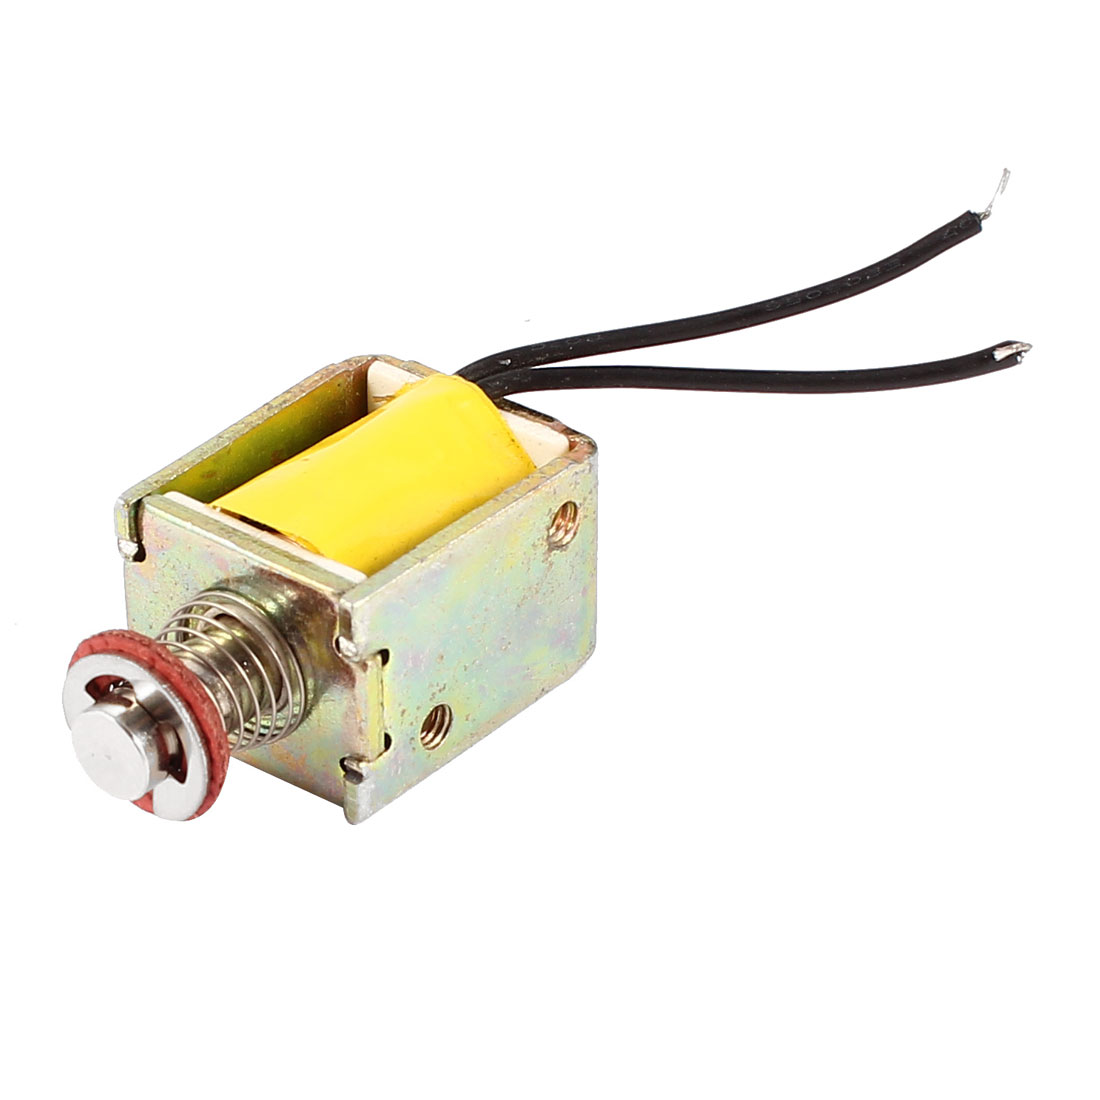 DC 15V 0.21A 150gf/50gf 1mm/4mm Push Type Open Frame Actuator Solenoid Electromagnet